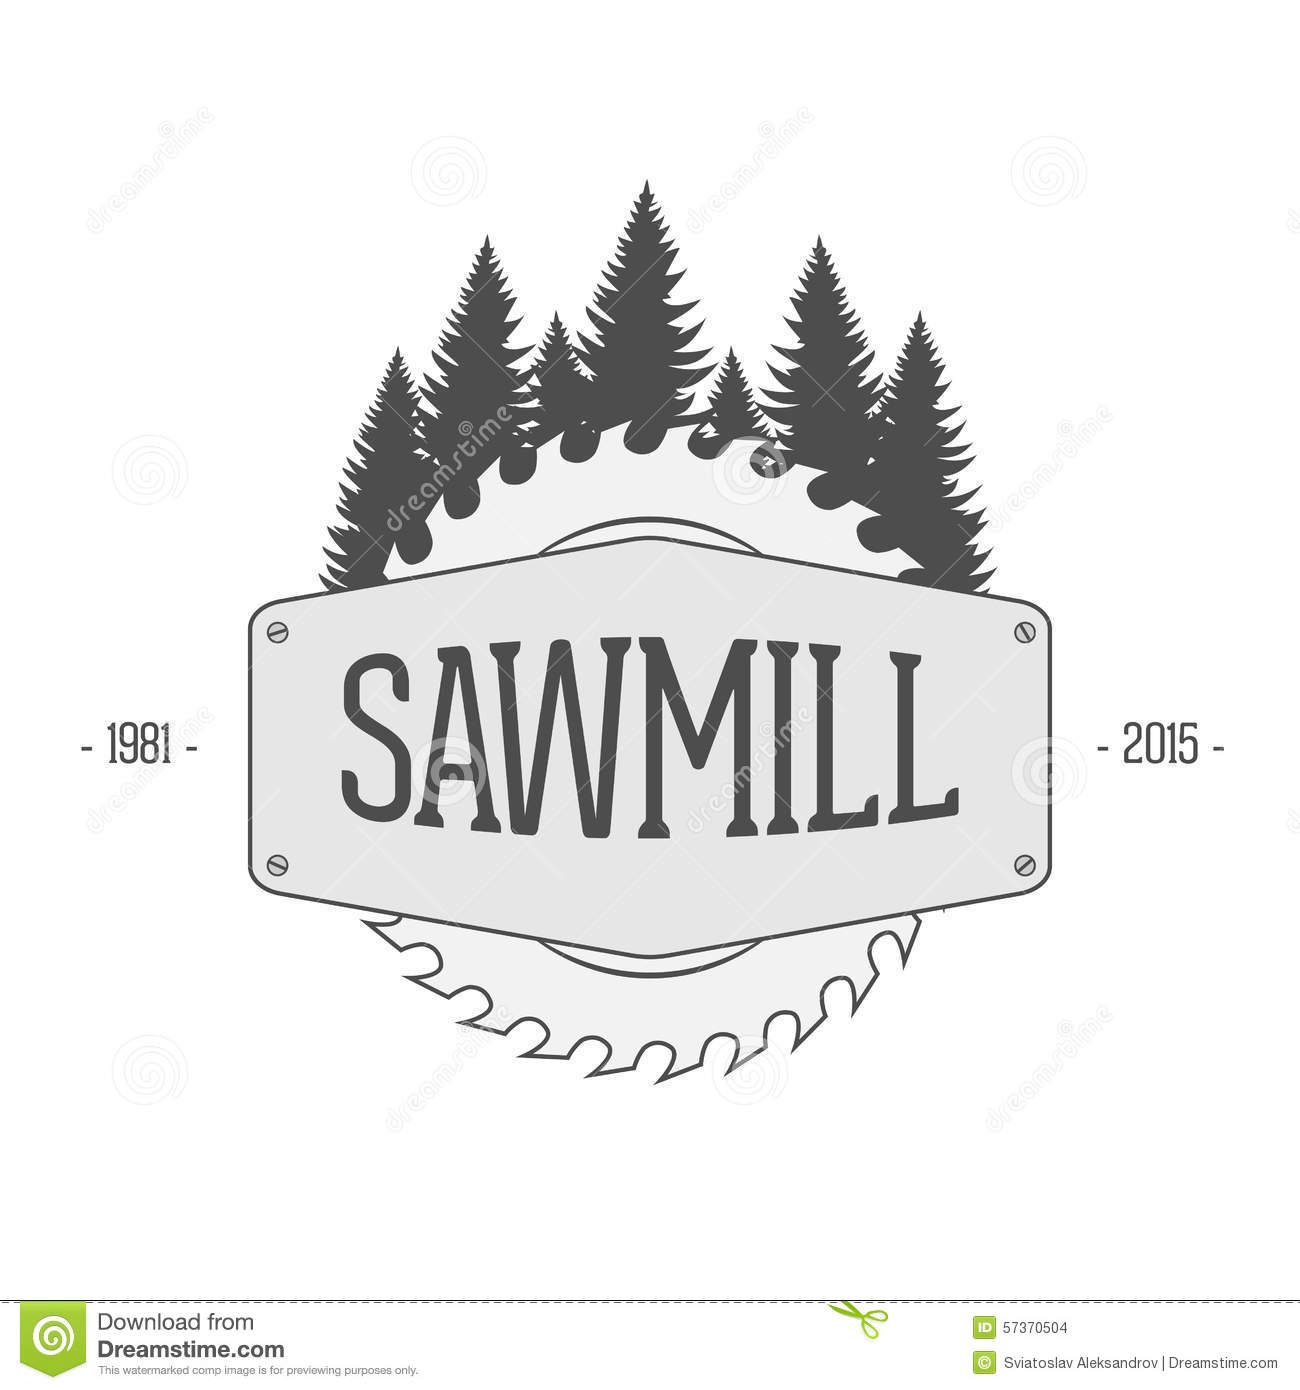 Vintage Vector Label Of Sawmill Stock Vector - Image: 57370504